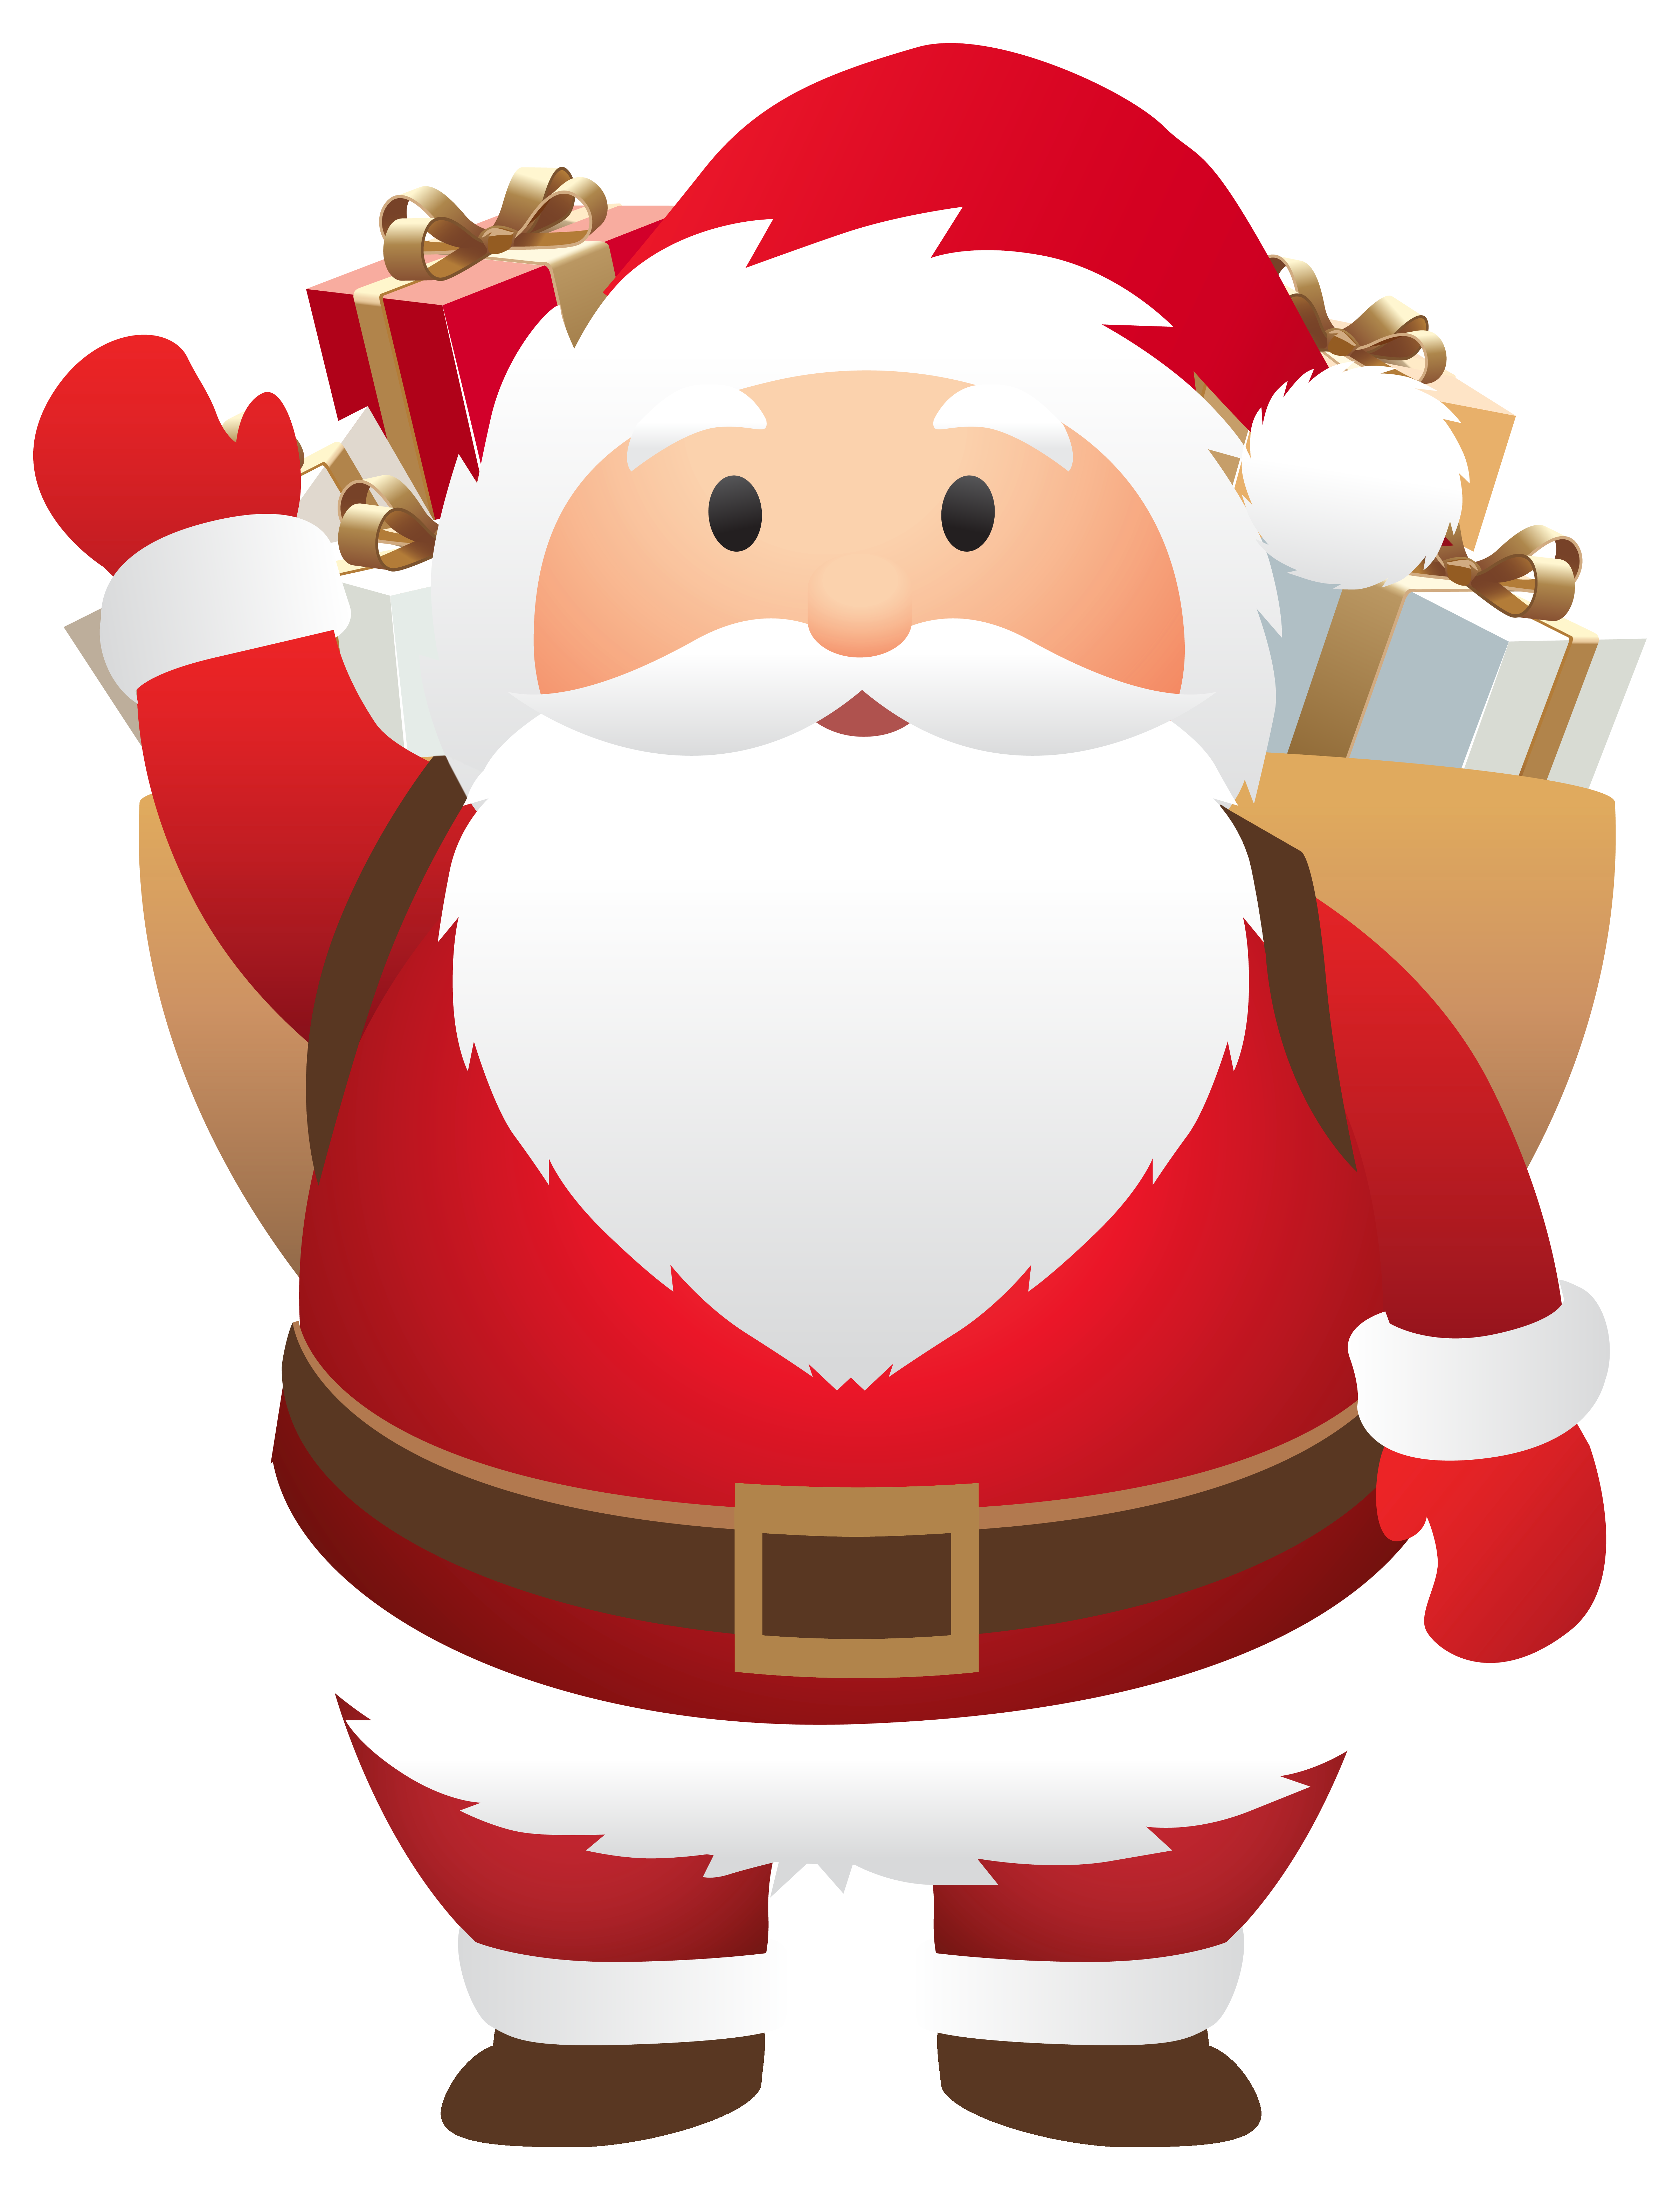 graphic royalty free Claus clipart cute. Santa png image gallery.